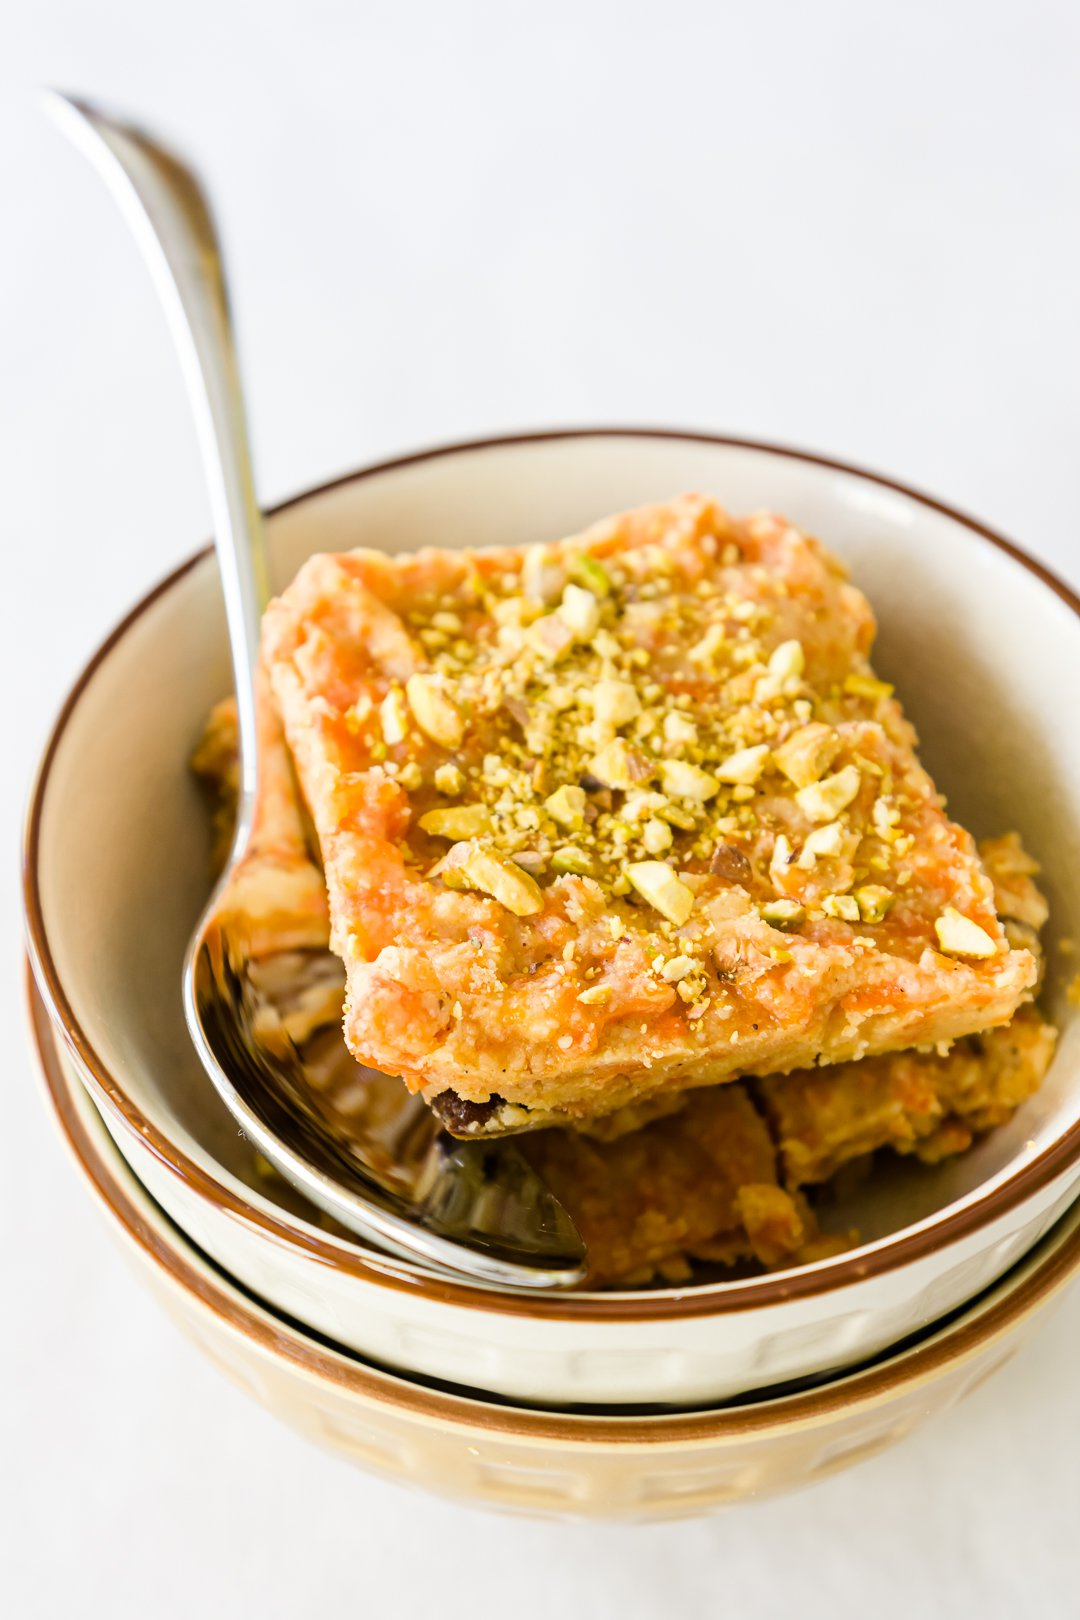 A piece of chilled carrot halwa in a bowl